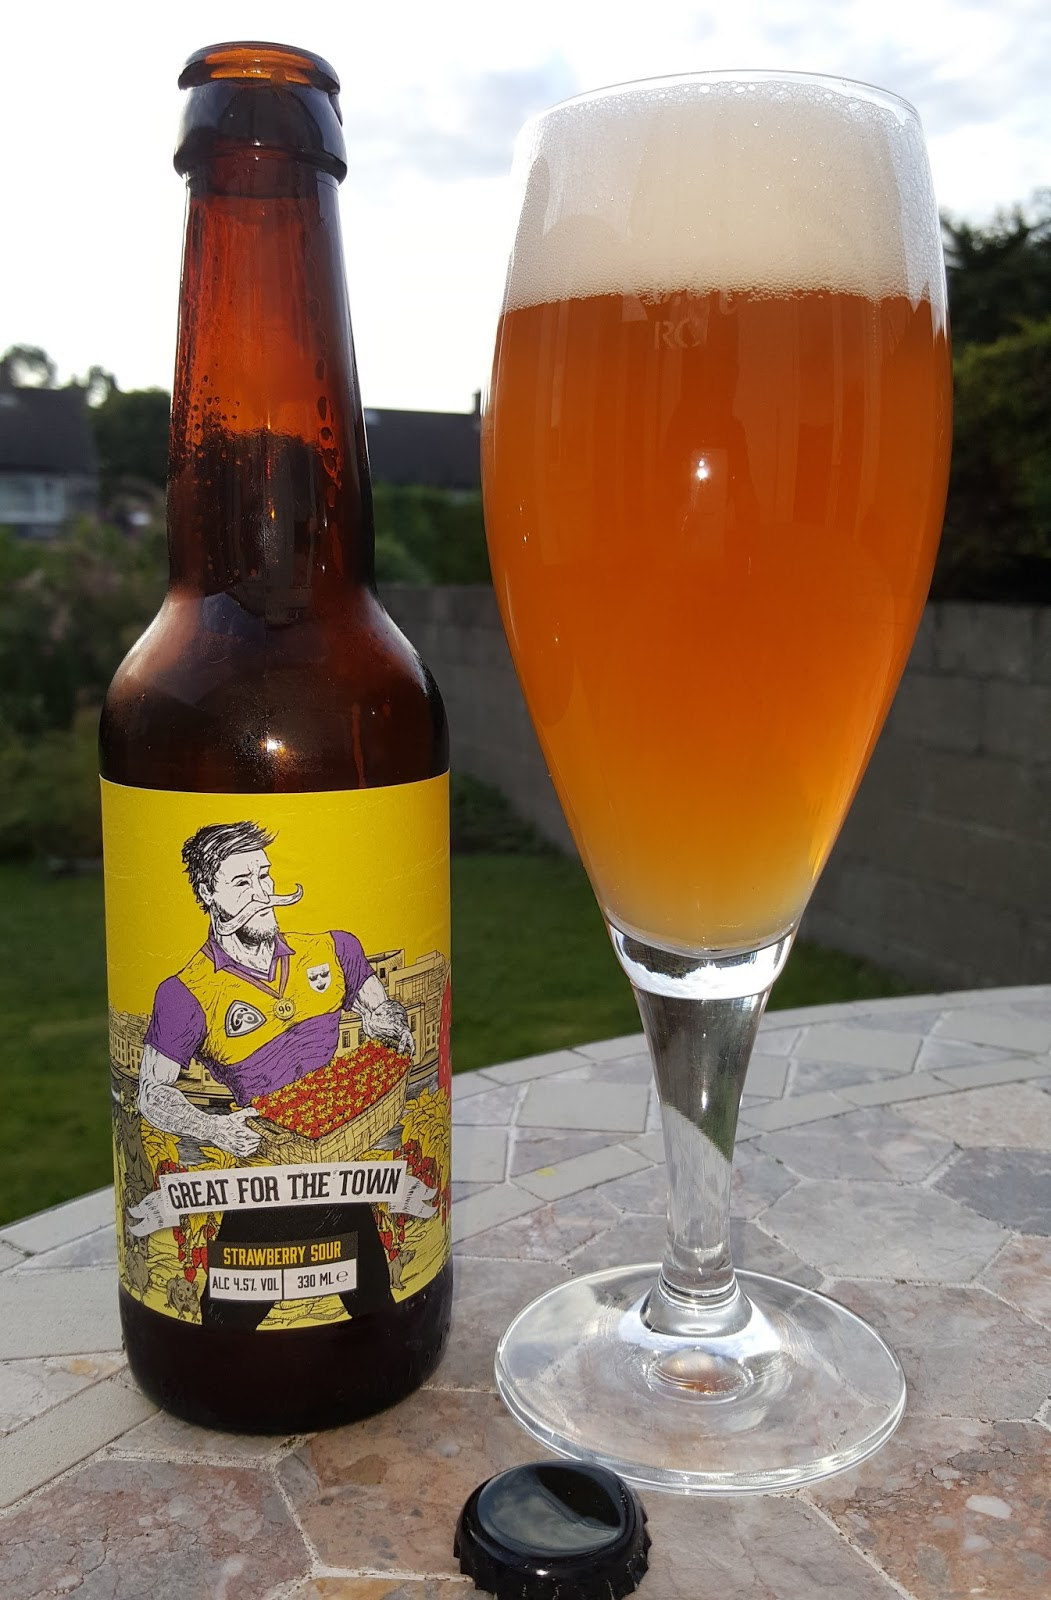 bb68e73f577afa Last of the set is the lightest: Great for the Town is just 4.5% ABV. It's  a non-specified style of sour beer with the inclusion of Wexford's  signature crop ...